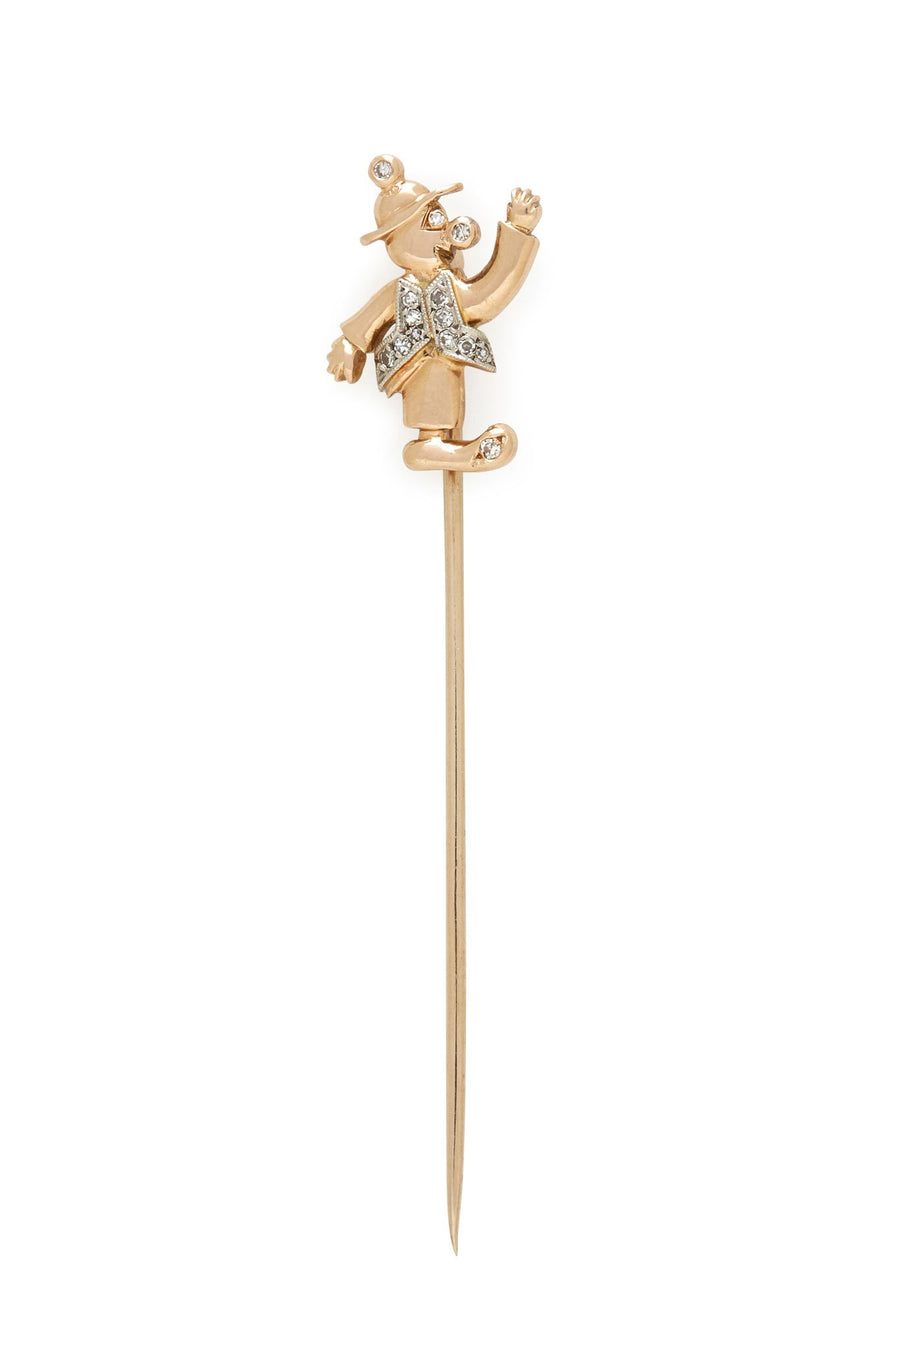 14K Gold & Diamonds Clown Stick Pin